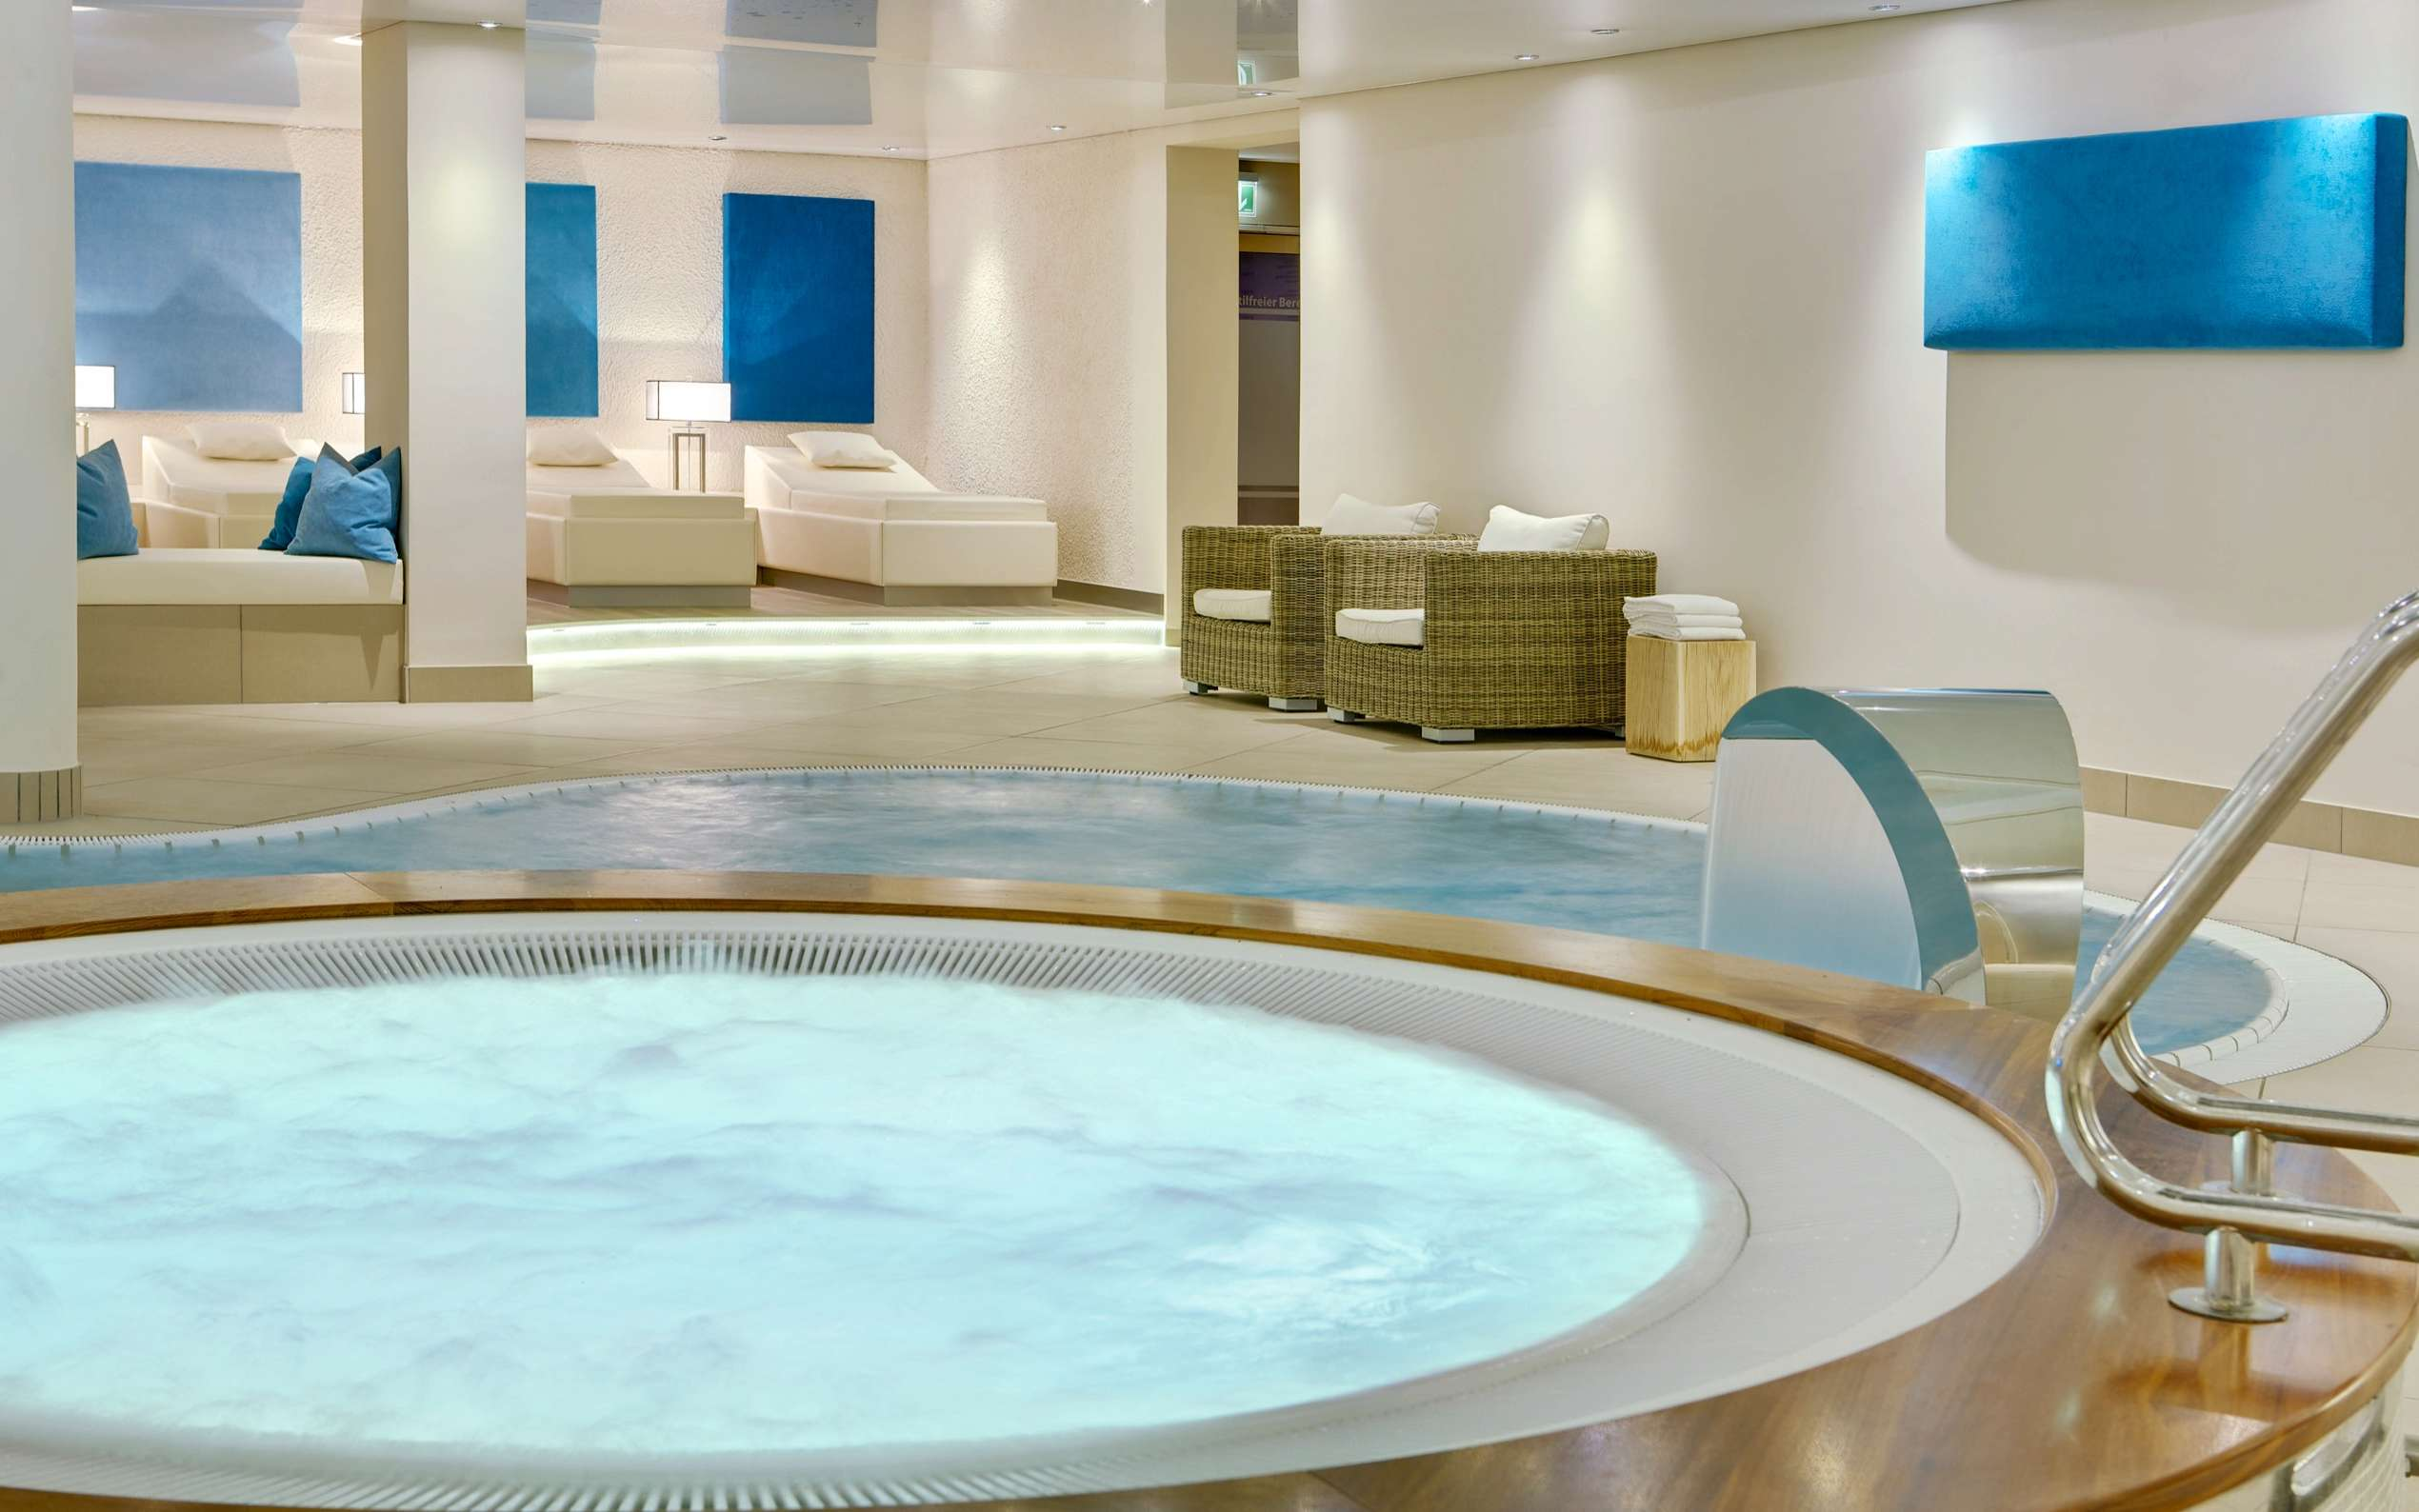 Welcome Hotel Bad Arolsen Spa Pool 02